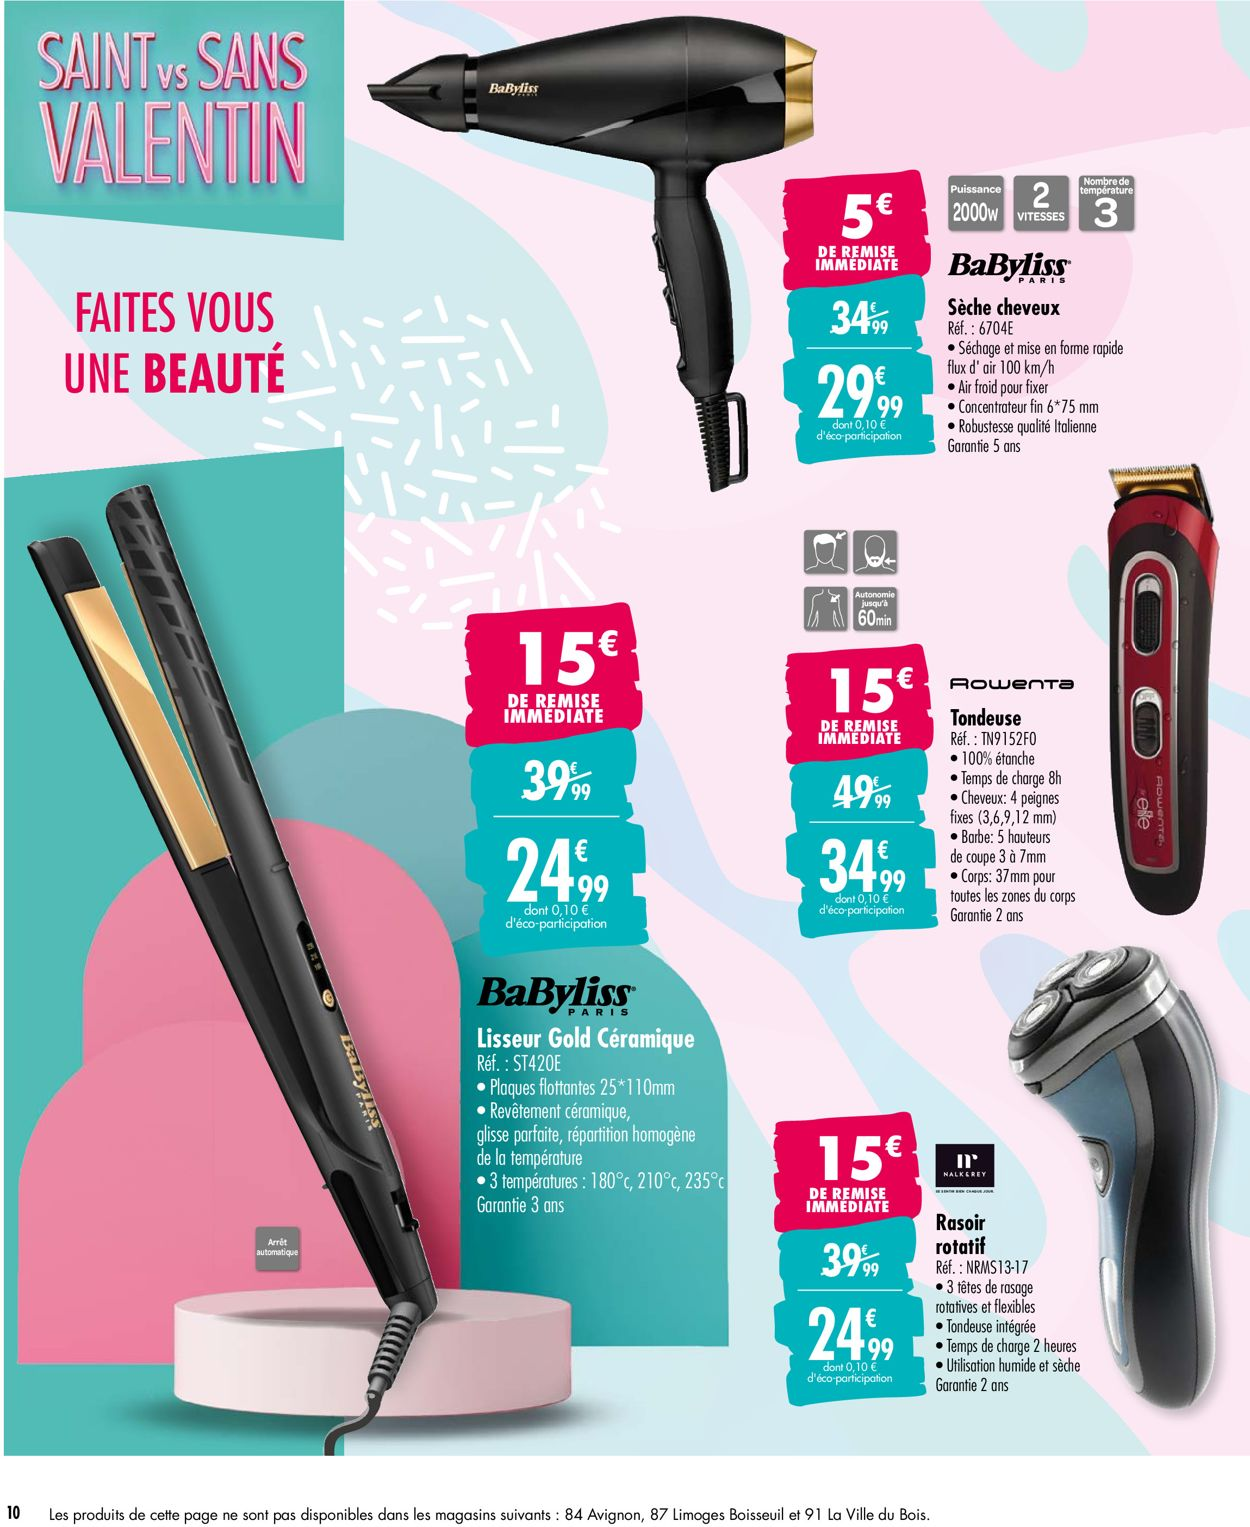 Carrefour Catalogue Actuel 11 02 17 02 2020 10 Catalogue 24 Com